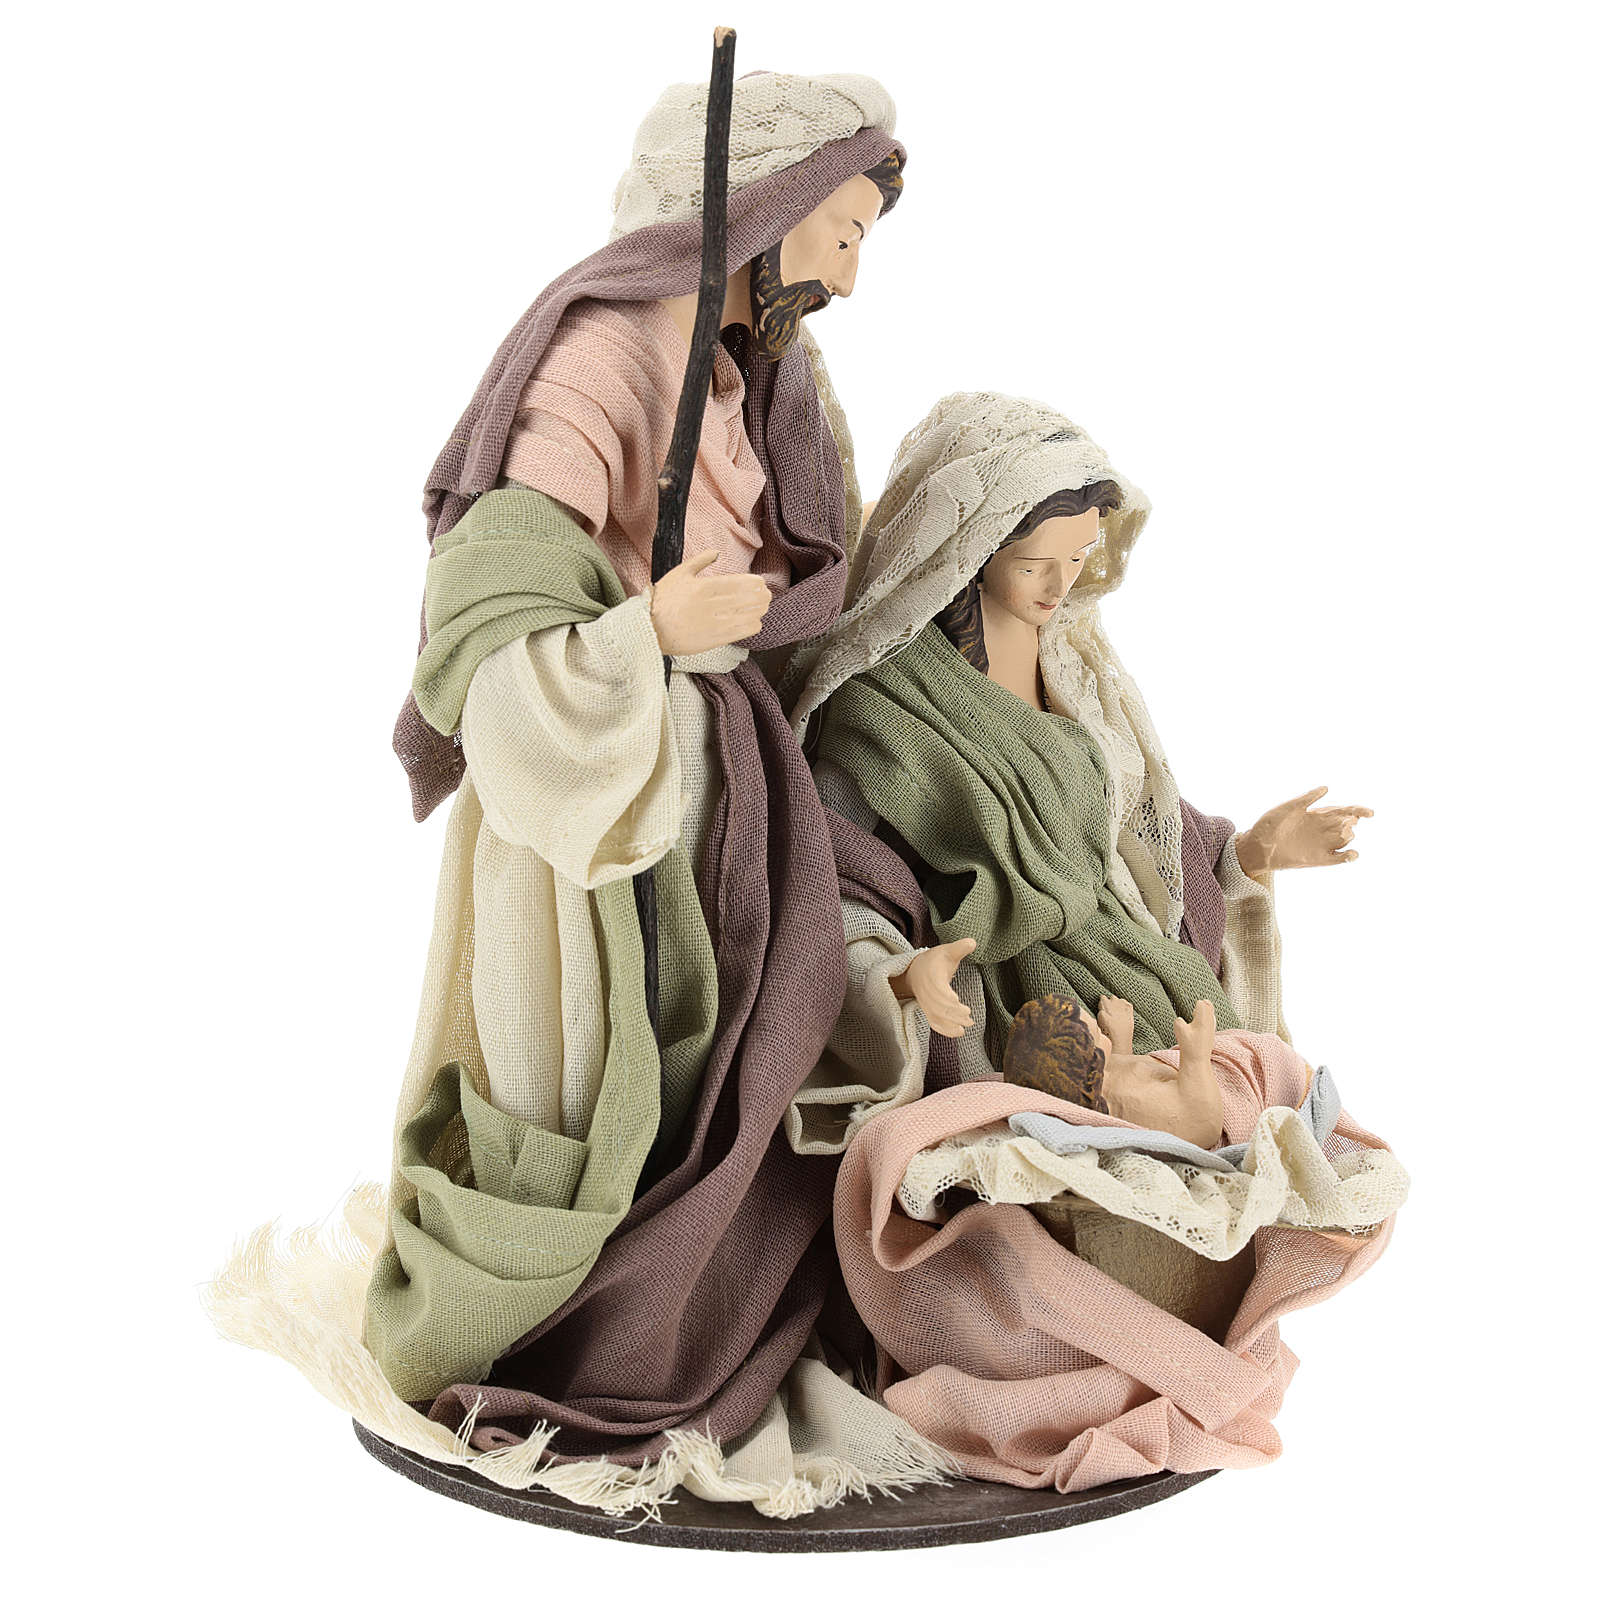 Nativity 28 cm in Shabby Chic style with fabric and lace details 3